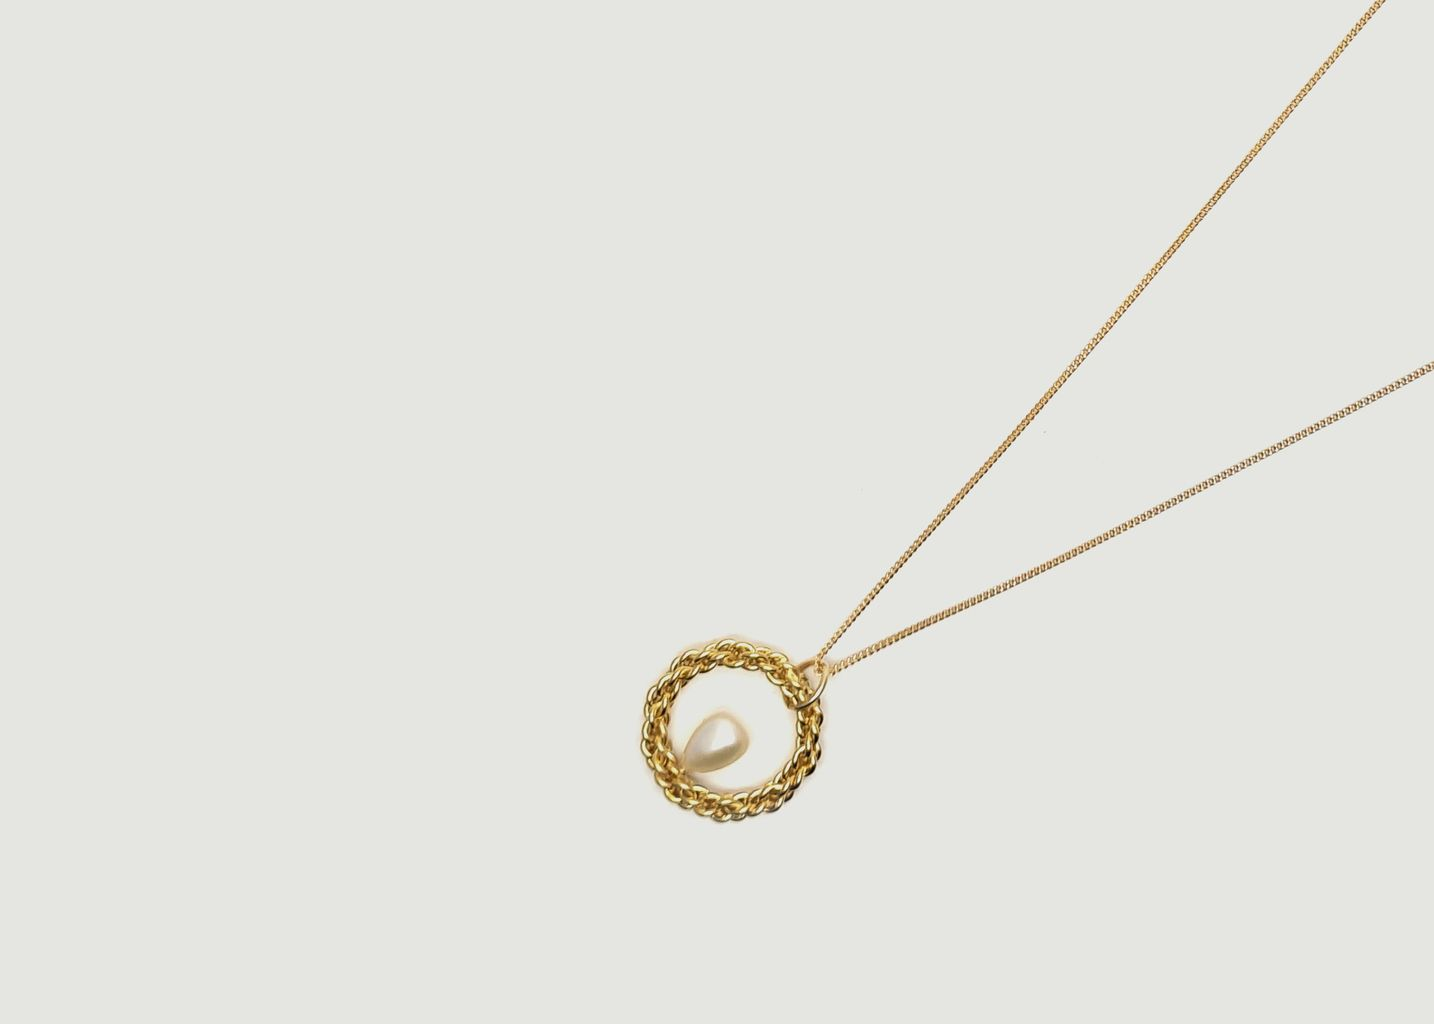 Collier Lucy - Gisel B.